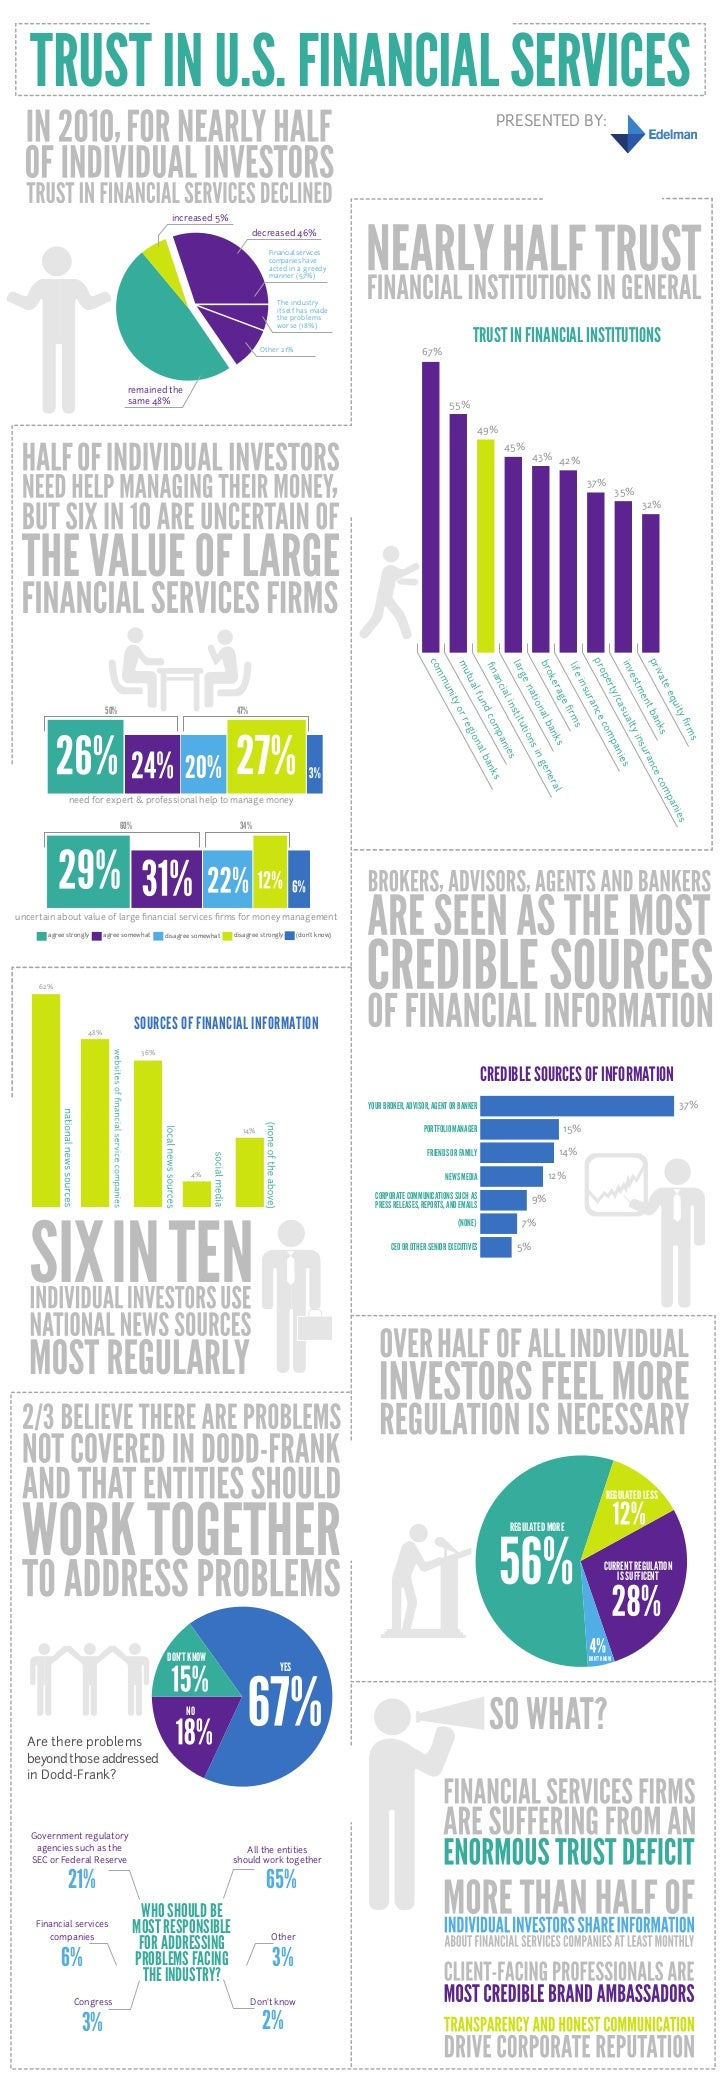 2011 Edelman Trust in U.S. Financial Services Infographic